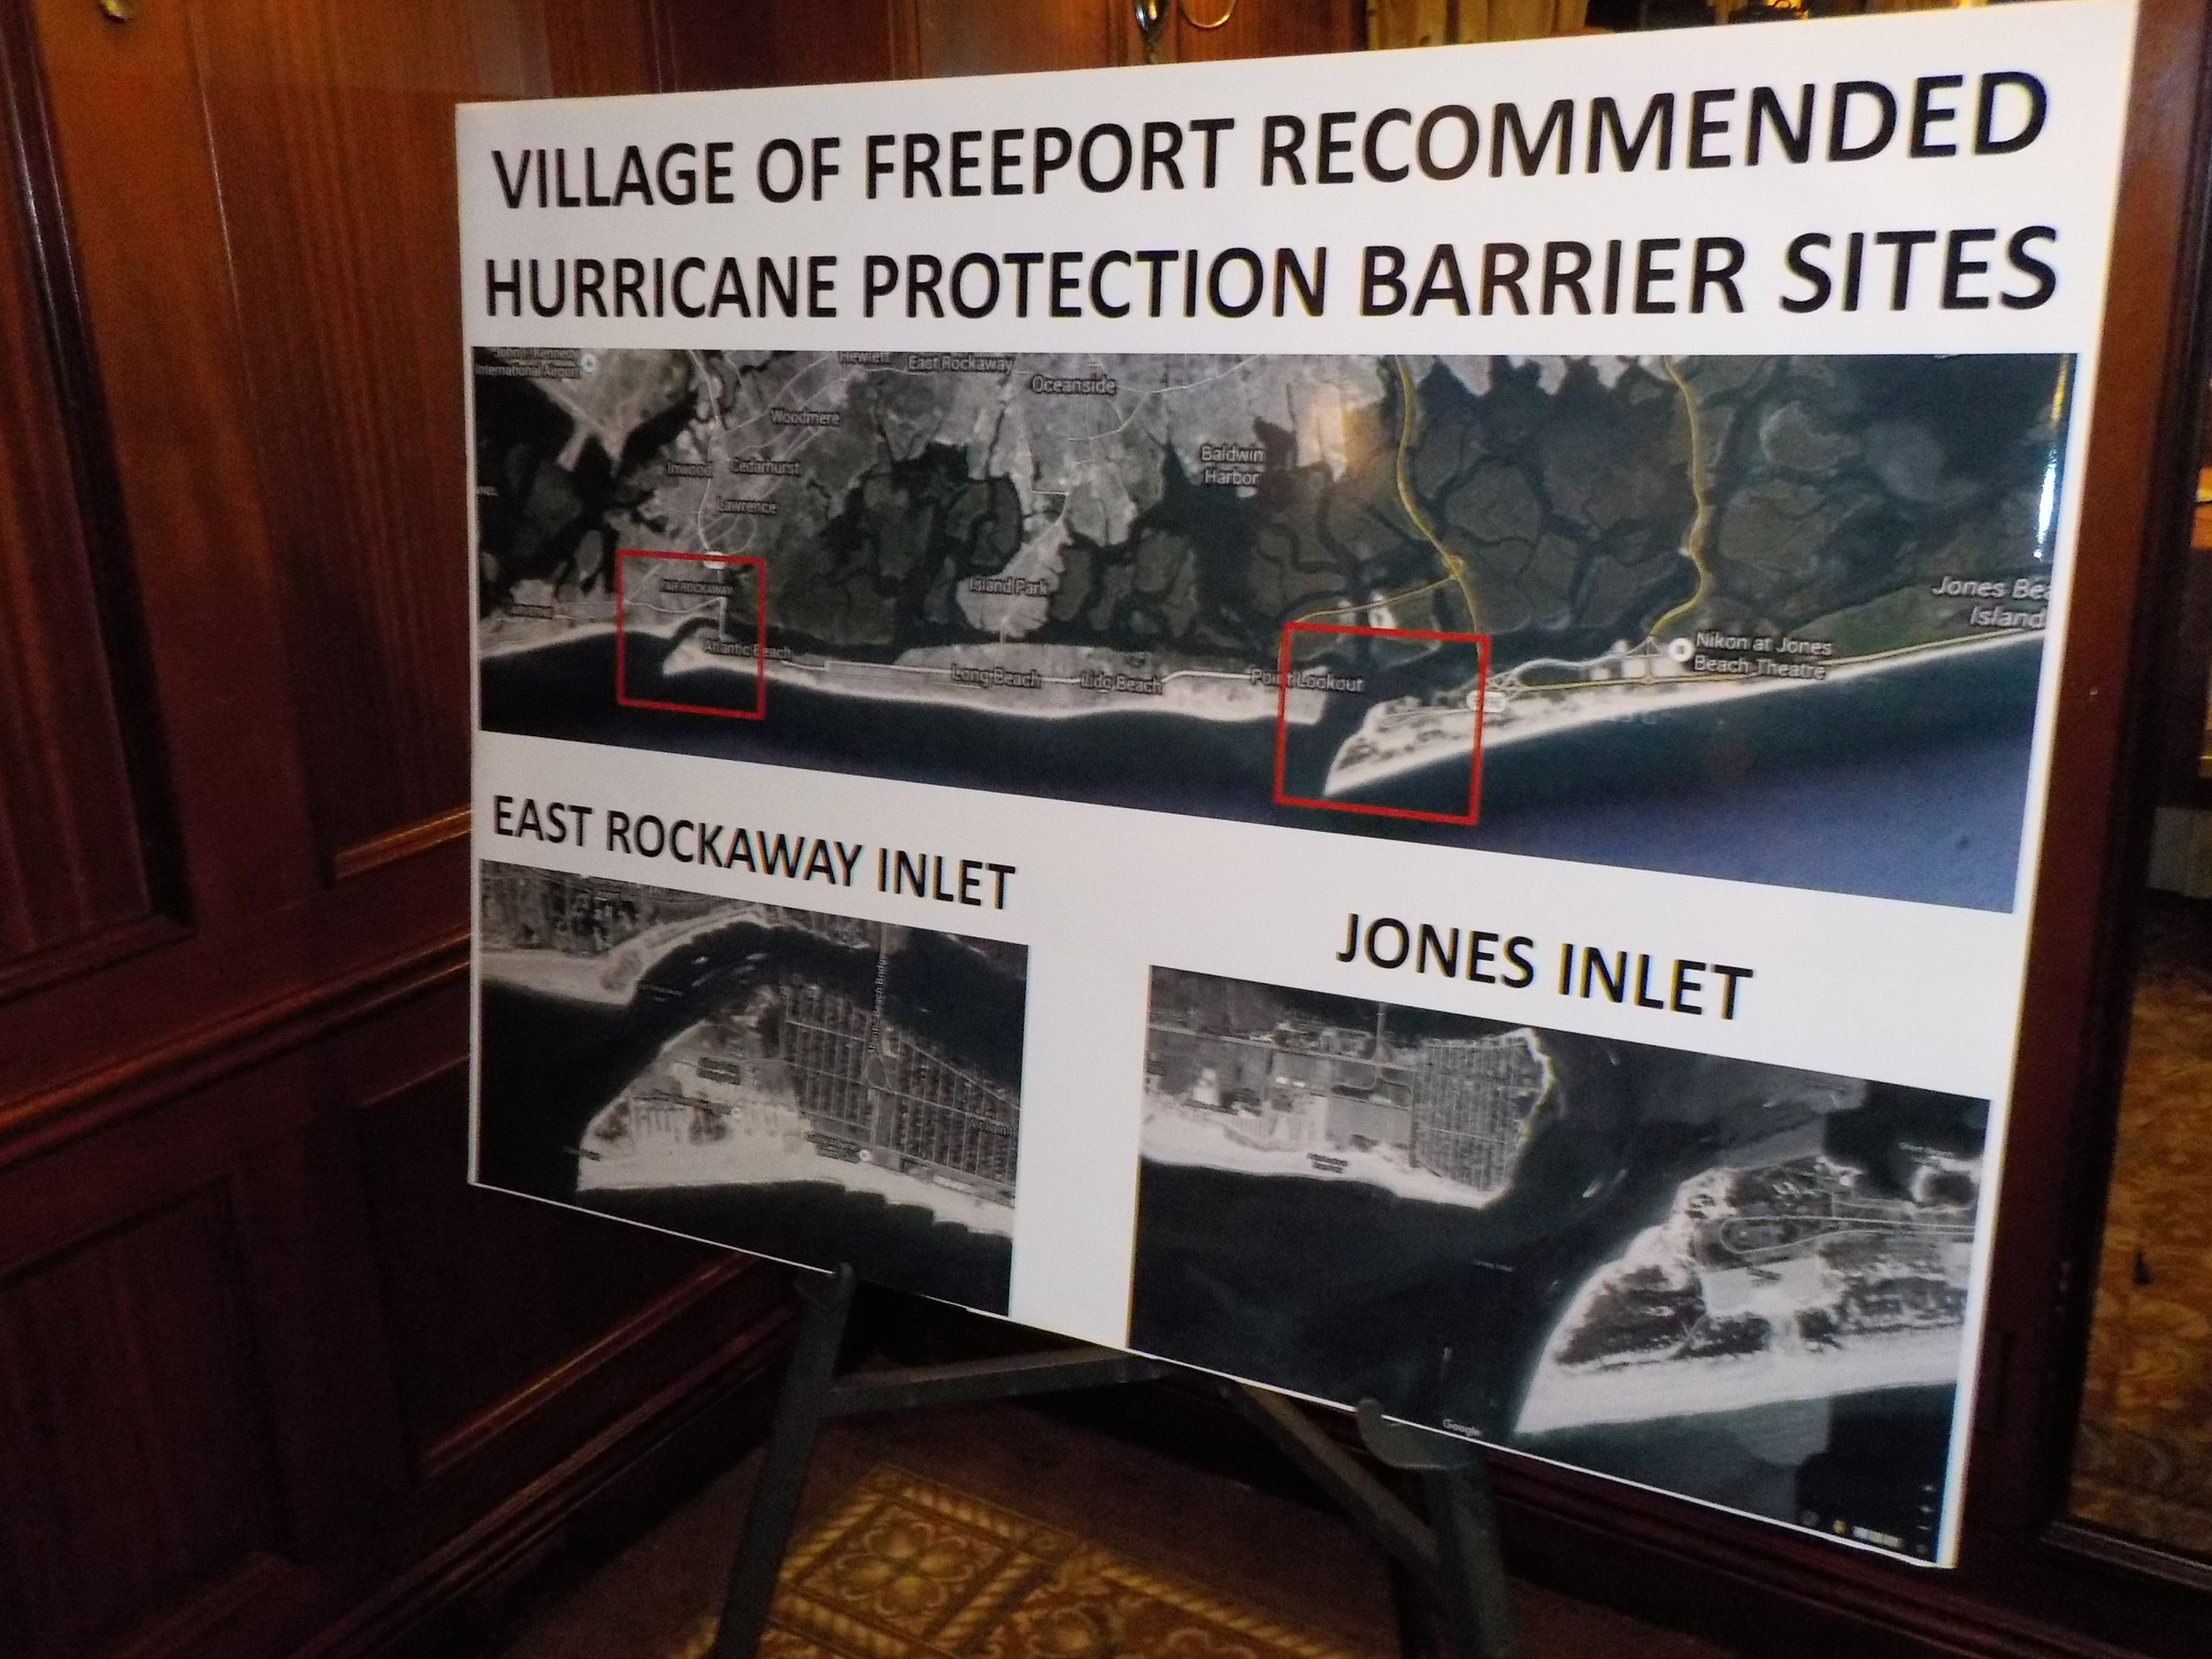 A display detailing the East Rockaway and Jones inlets, where the hurricane protection barriers would be built if the study proves they are viable.